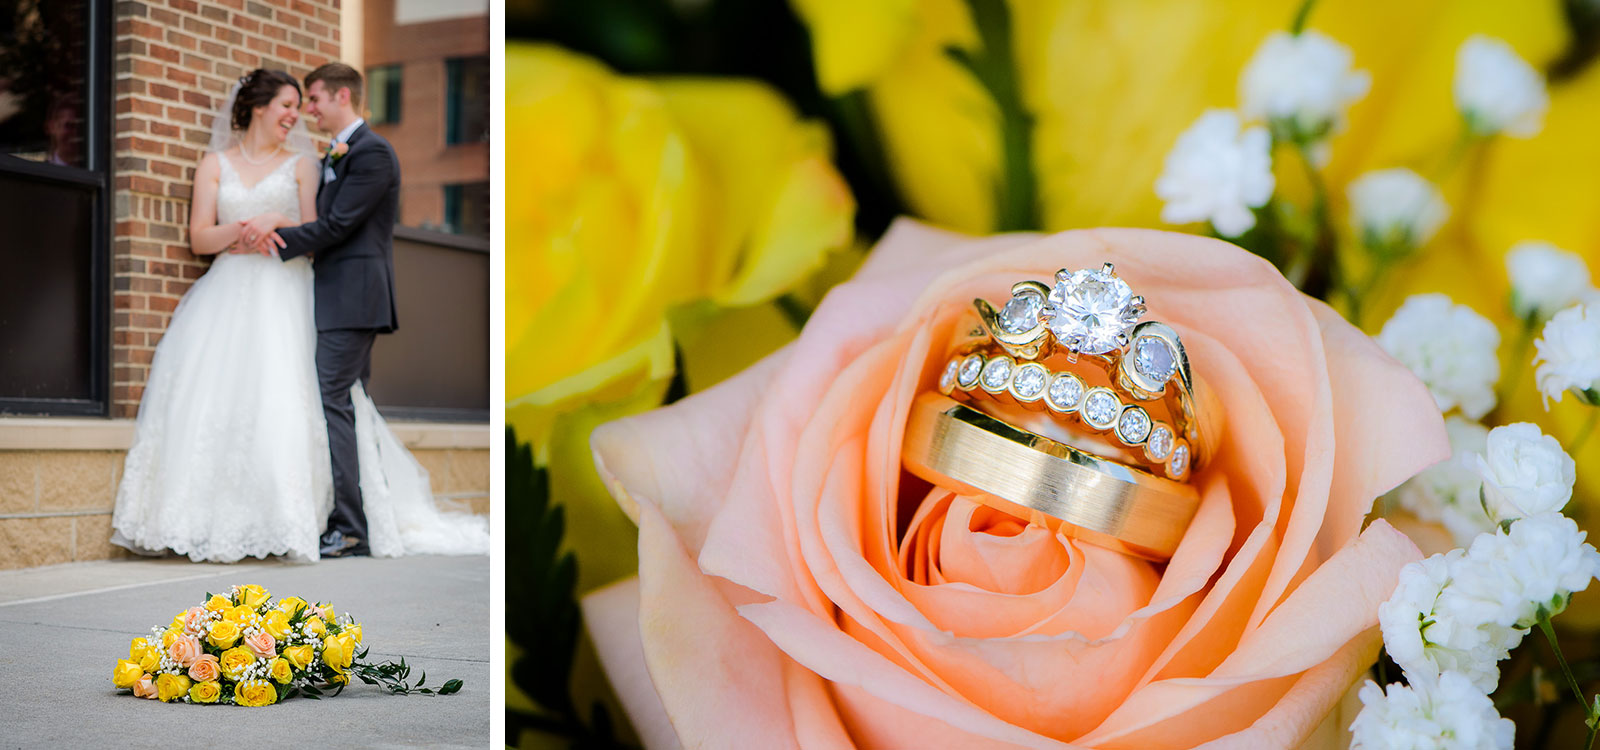 Eric_and_Christy_Photography_Blog_Wedding_Kelly_Michael-43-44